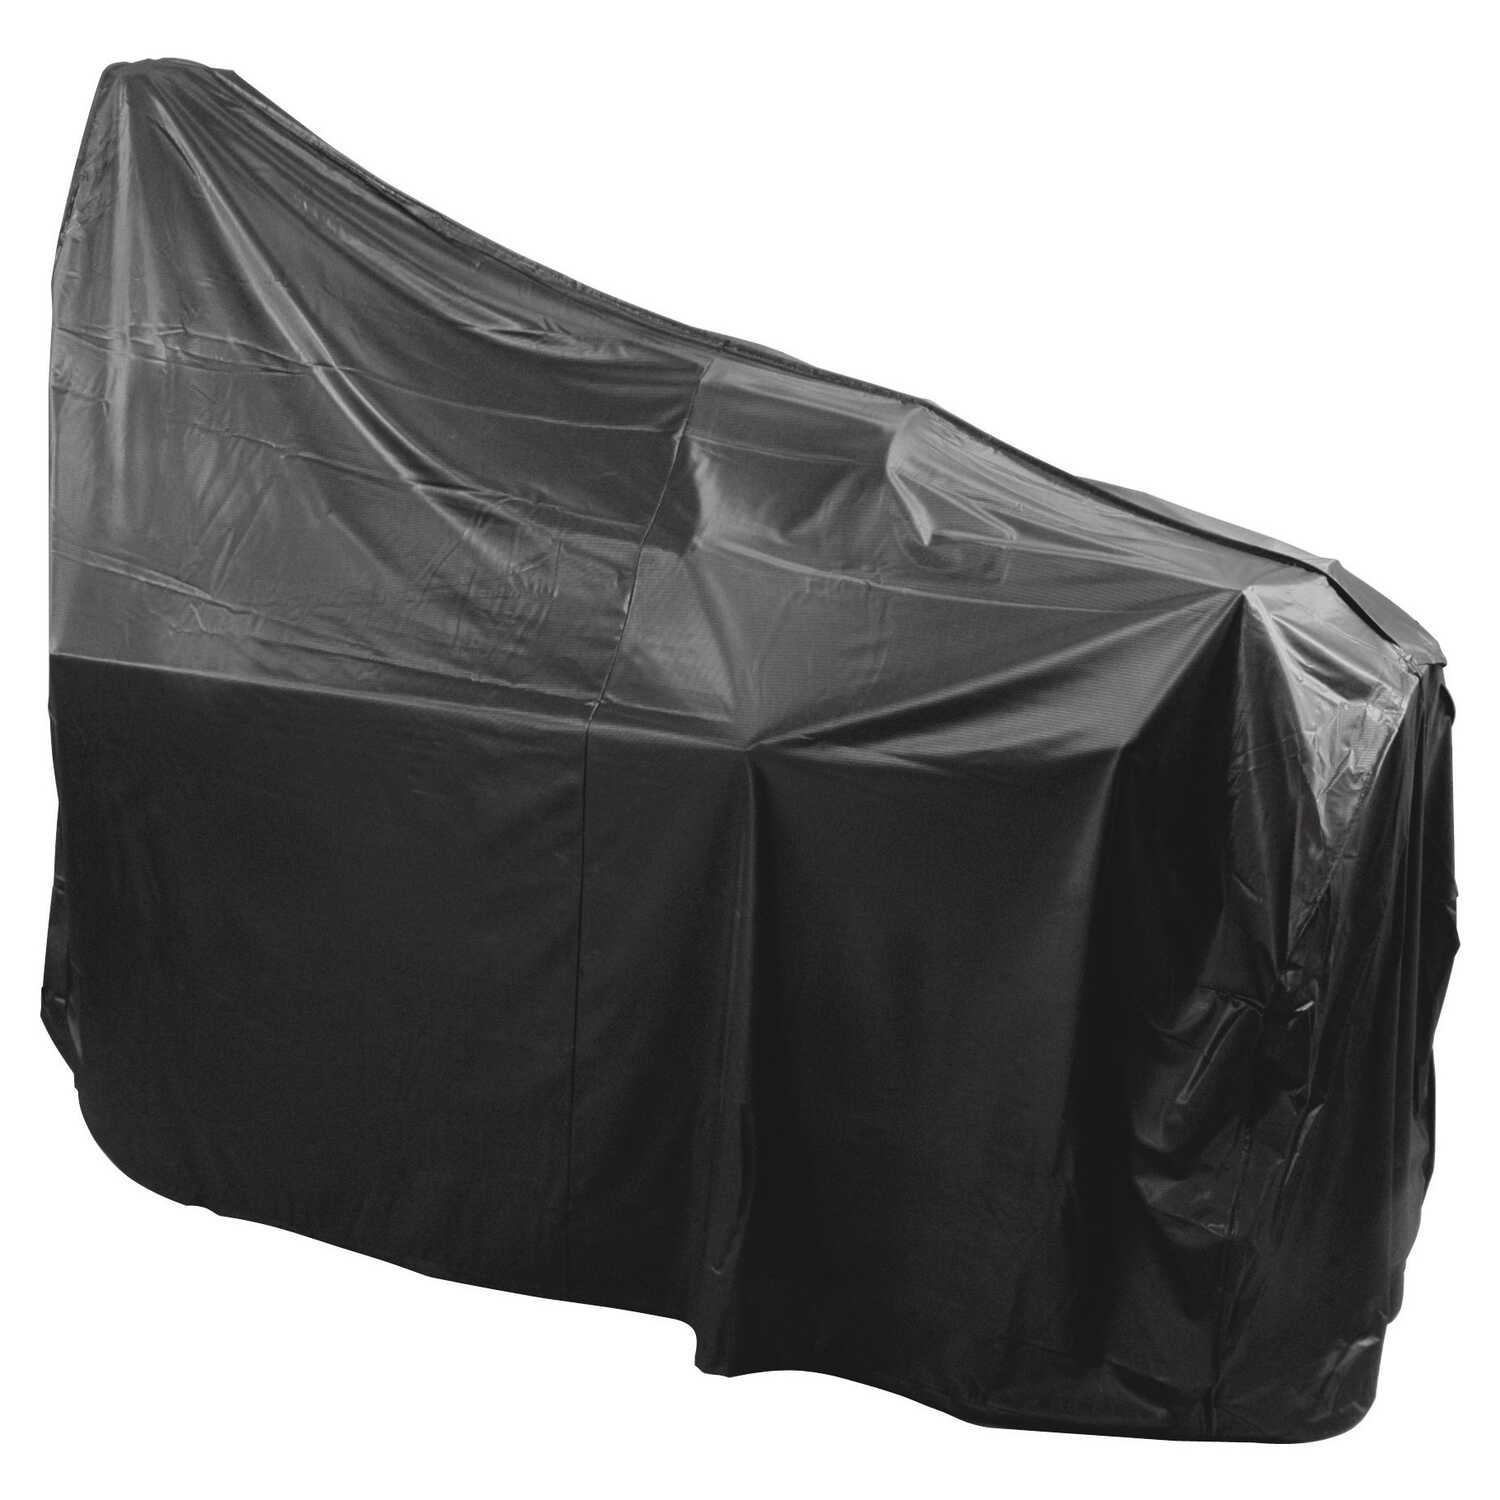 Char-Broil  Black  Grill Cover  72 in. W x 23 in. D x 44 in. H For Fits Most Larger Cart Style Grill